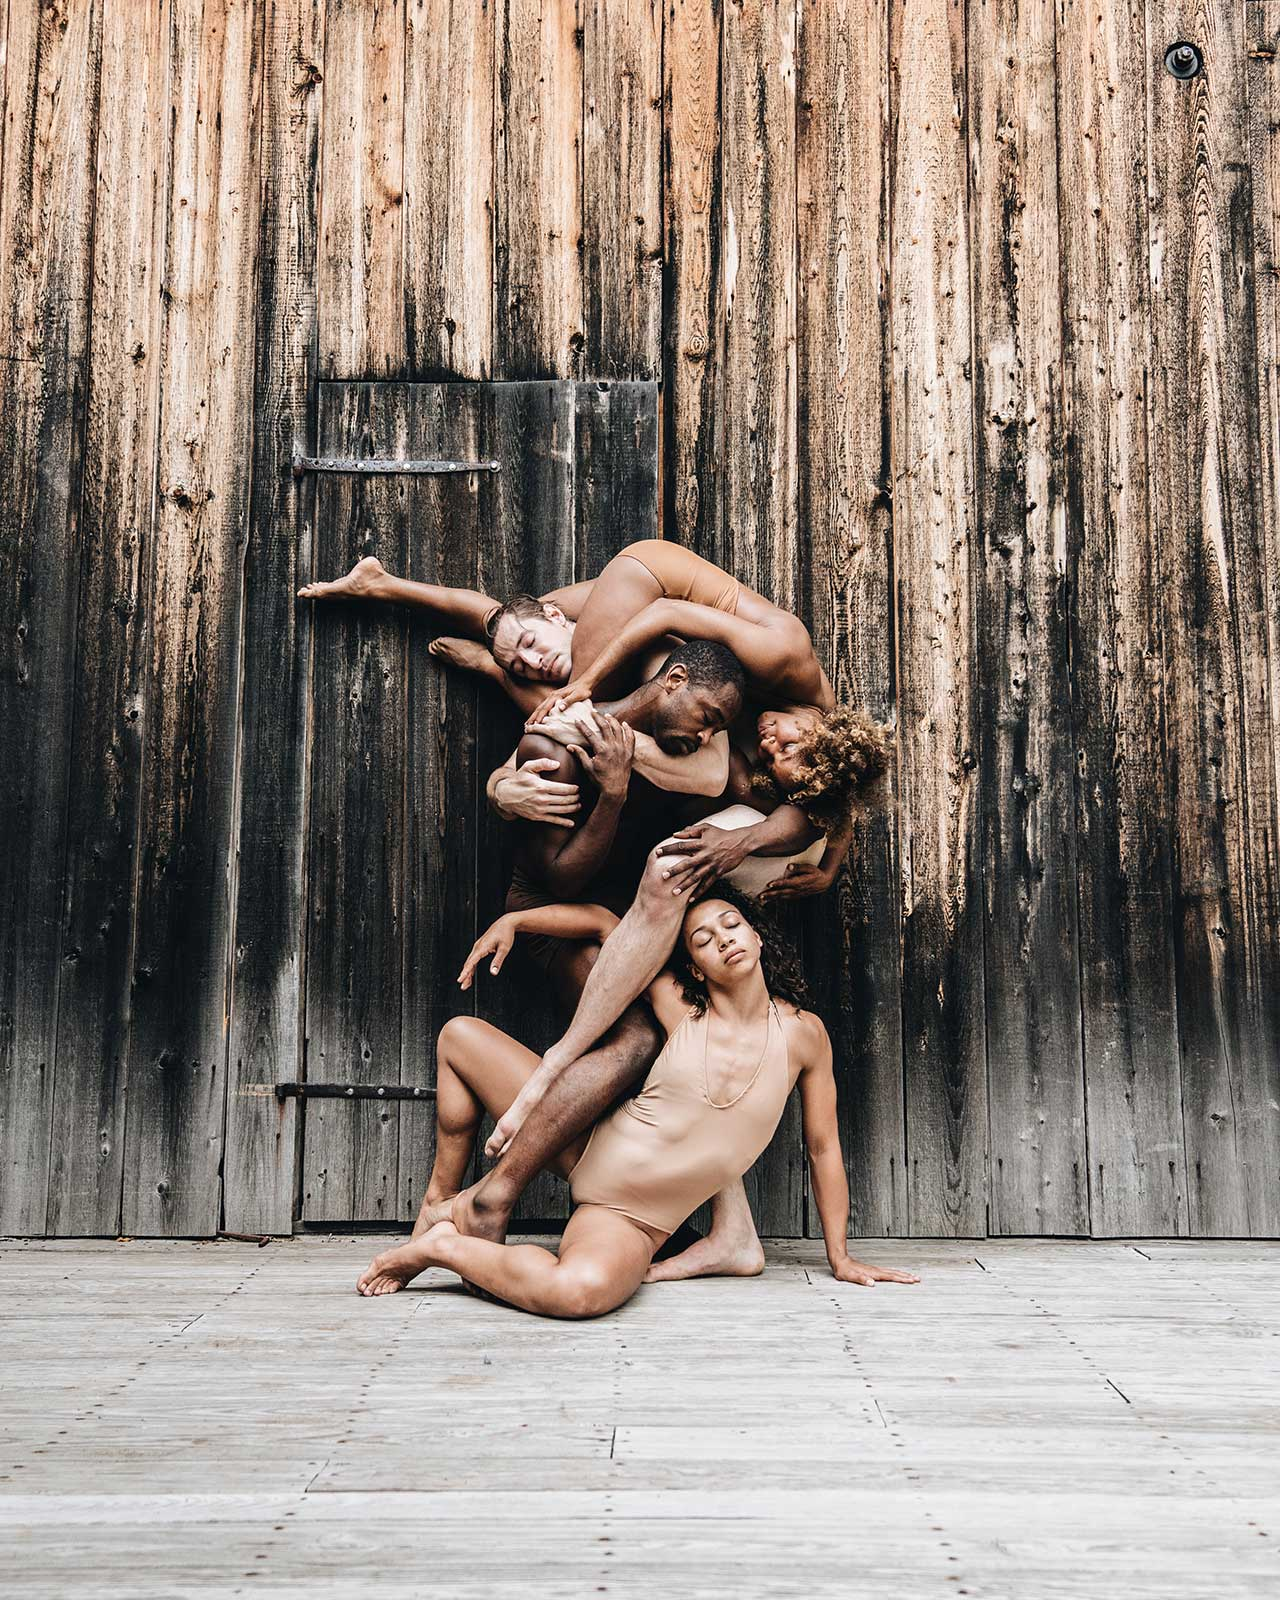 f10_cameras_and_dancers_jacob_jonas_the_company_yatzer.jpg